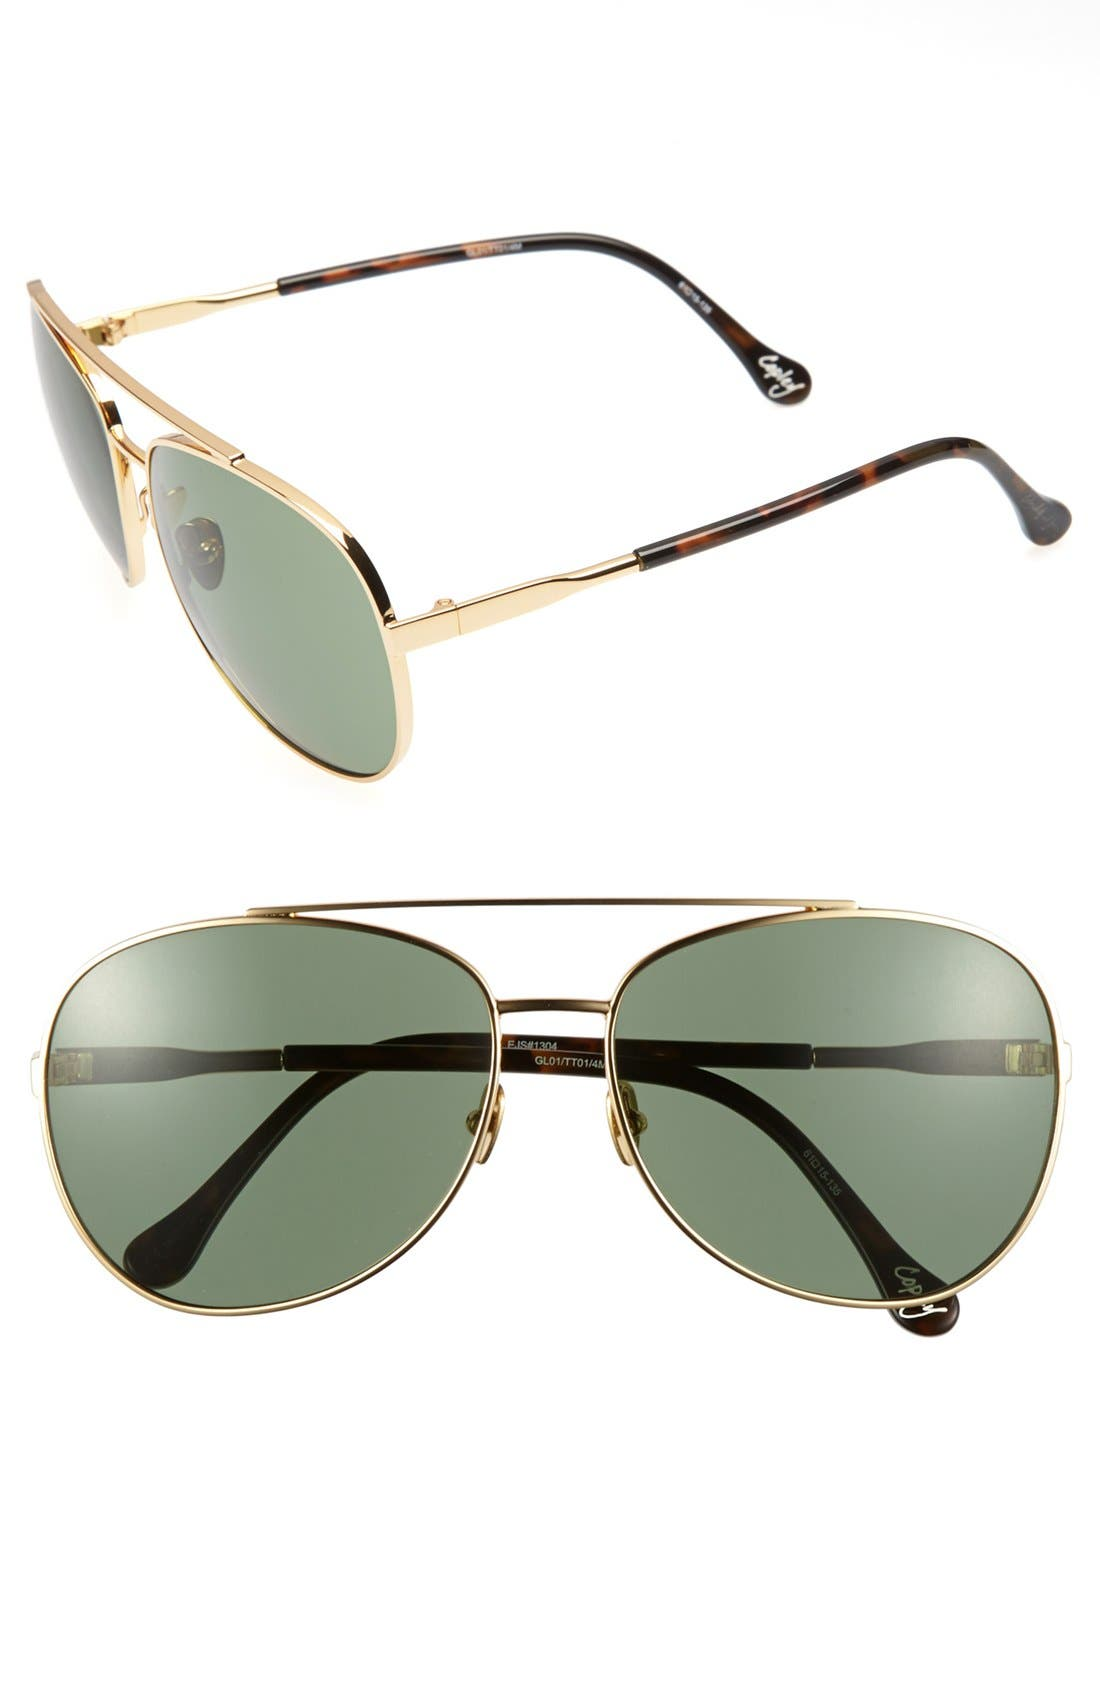 Alternate Image 1 Selected - Elizabeth & James 'Copley' 61mm Metal Aviator Sunglasses